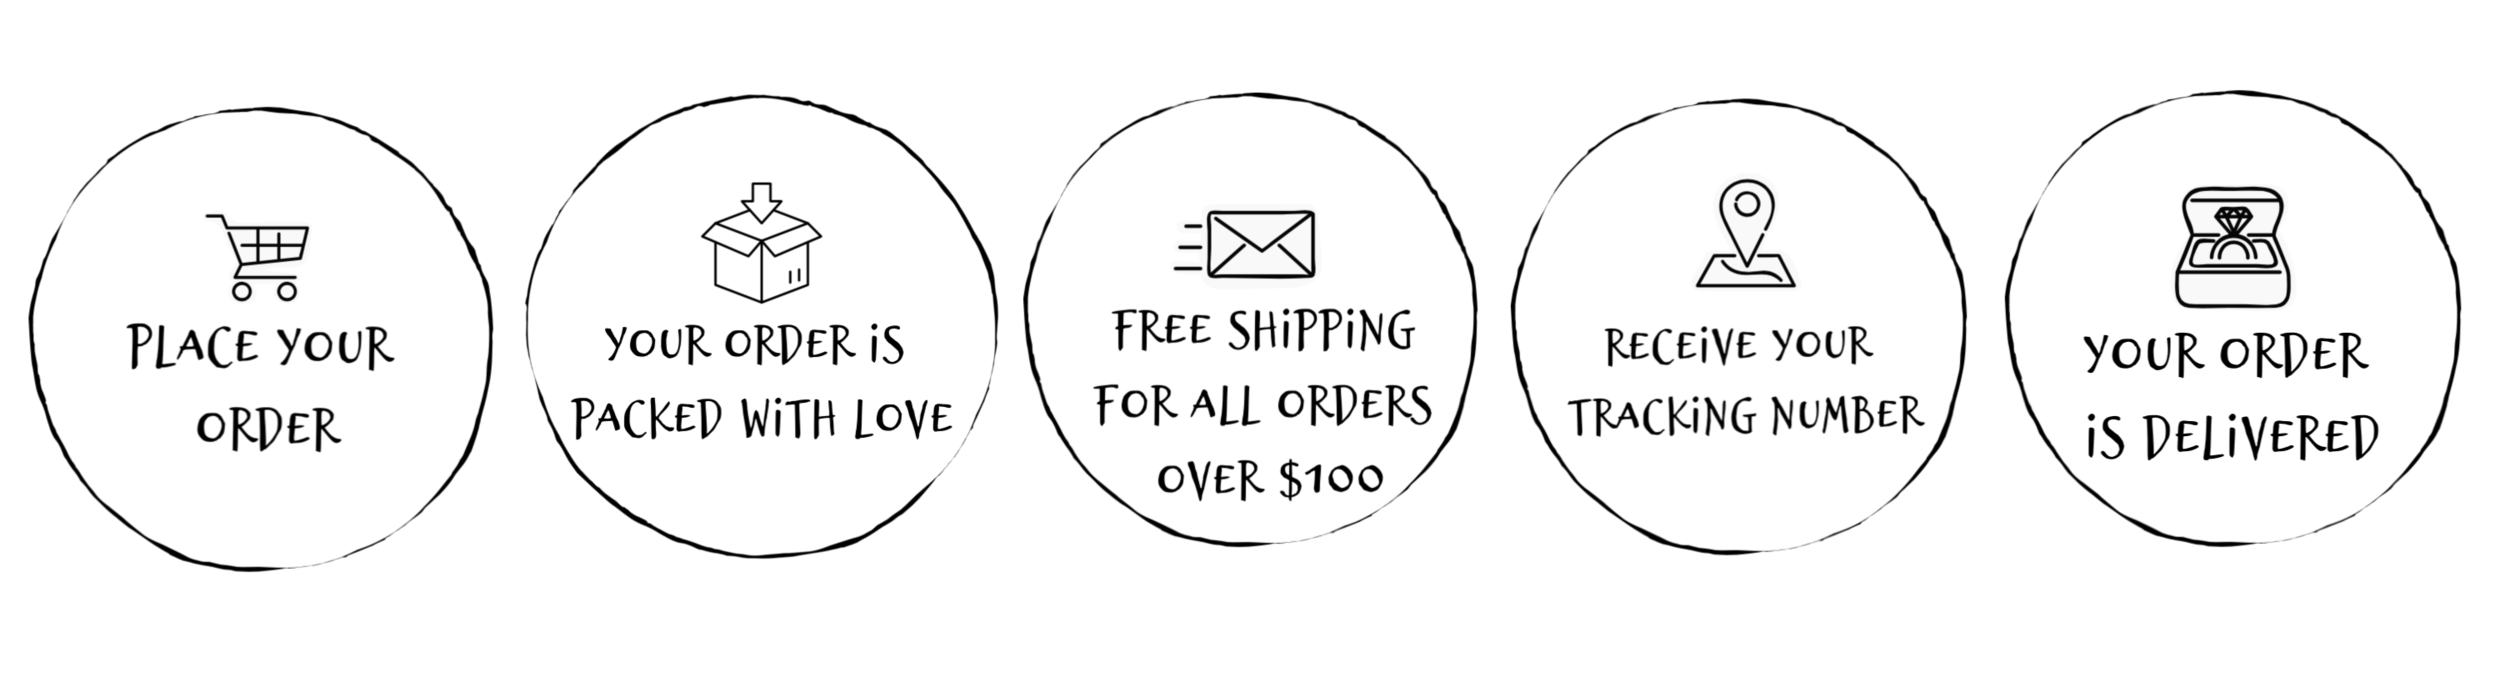 Skullptress jewelry shipping policy